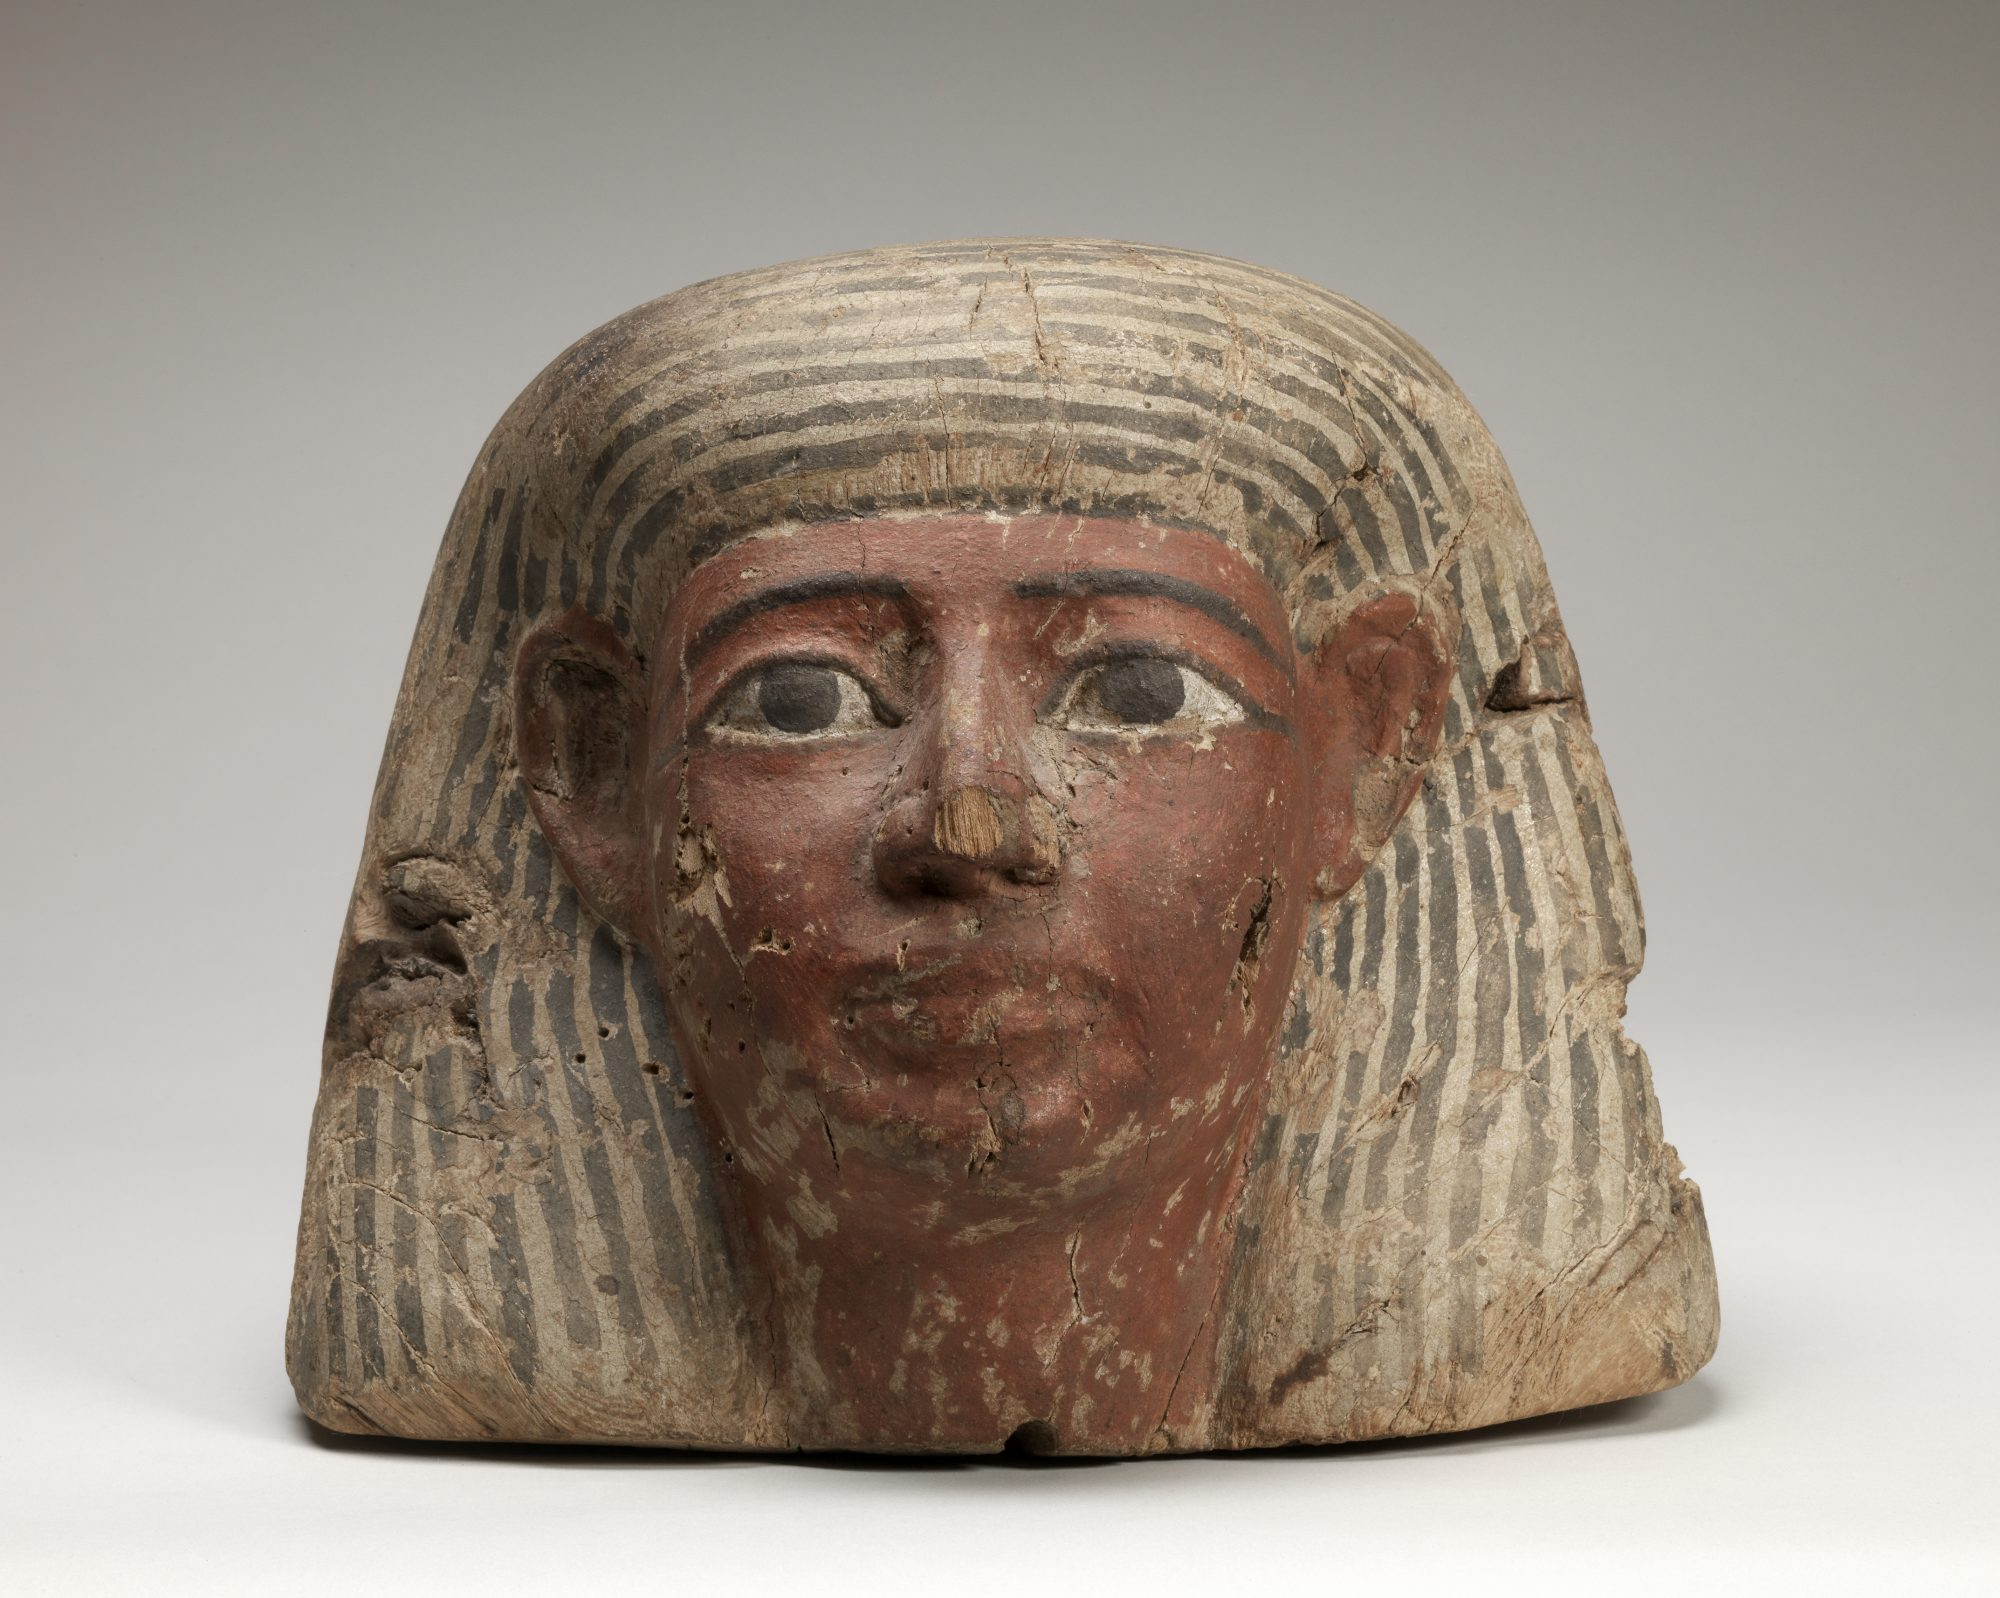 Unknown artist (Egyptian) Painted wood, 22nd–26th Dynasties (c. 945–525 BCE). Museum purchase, 61.4